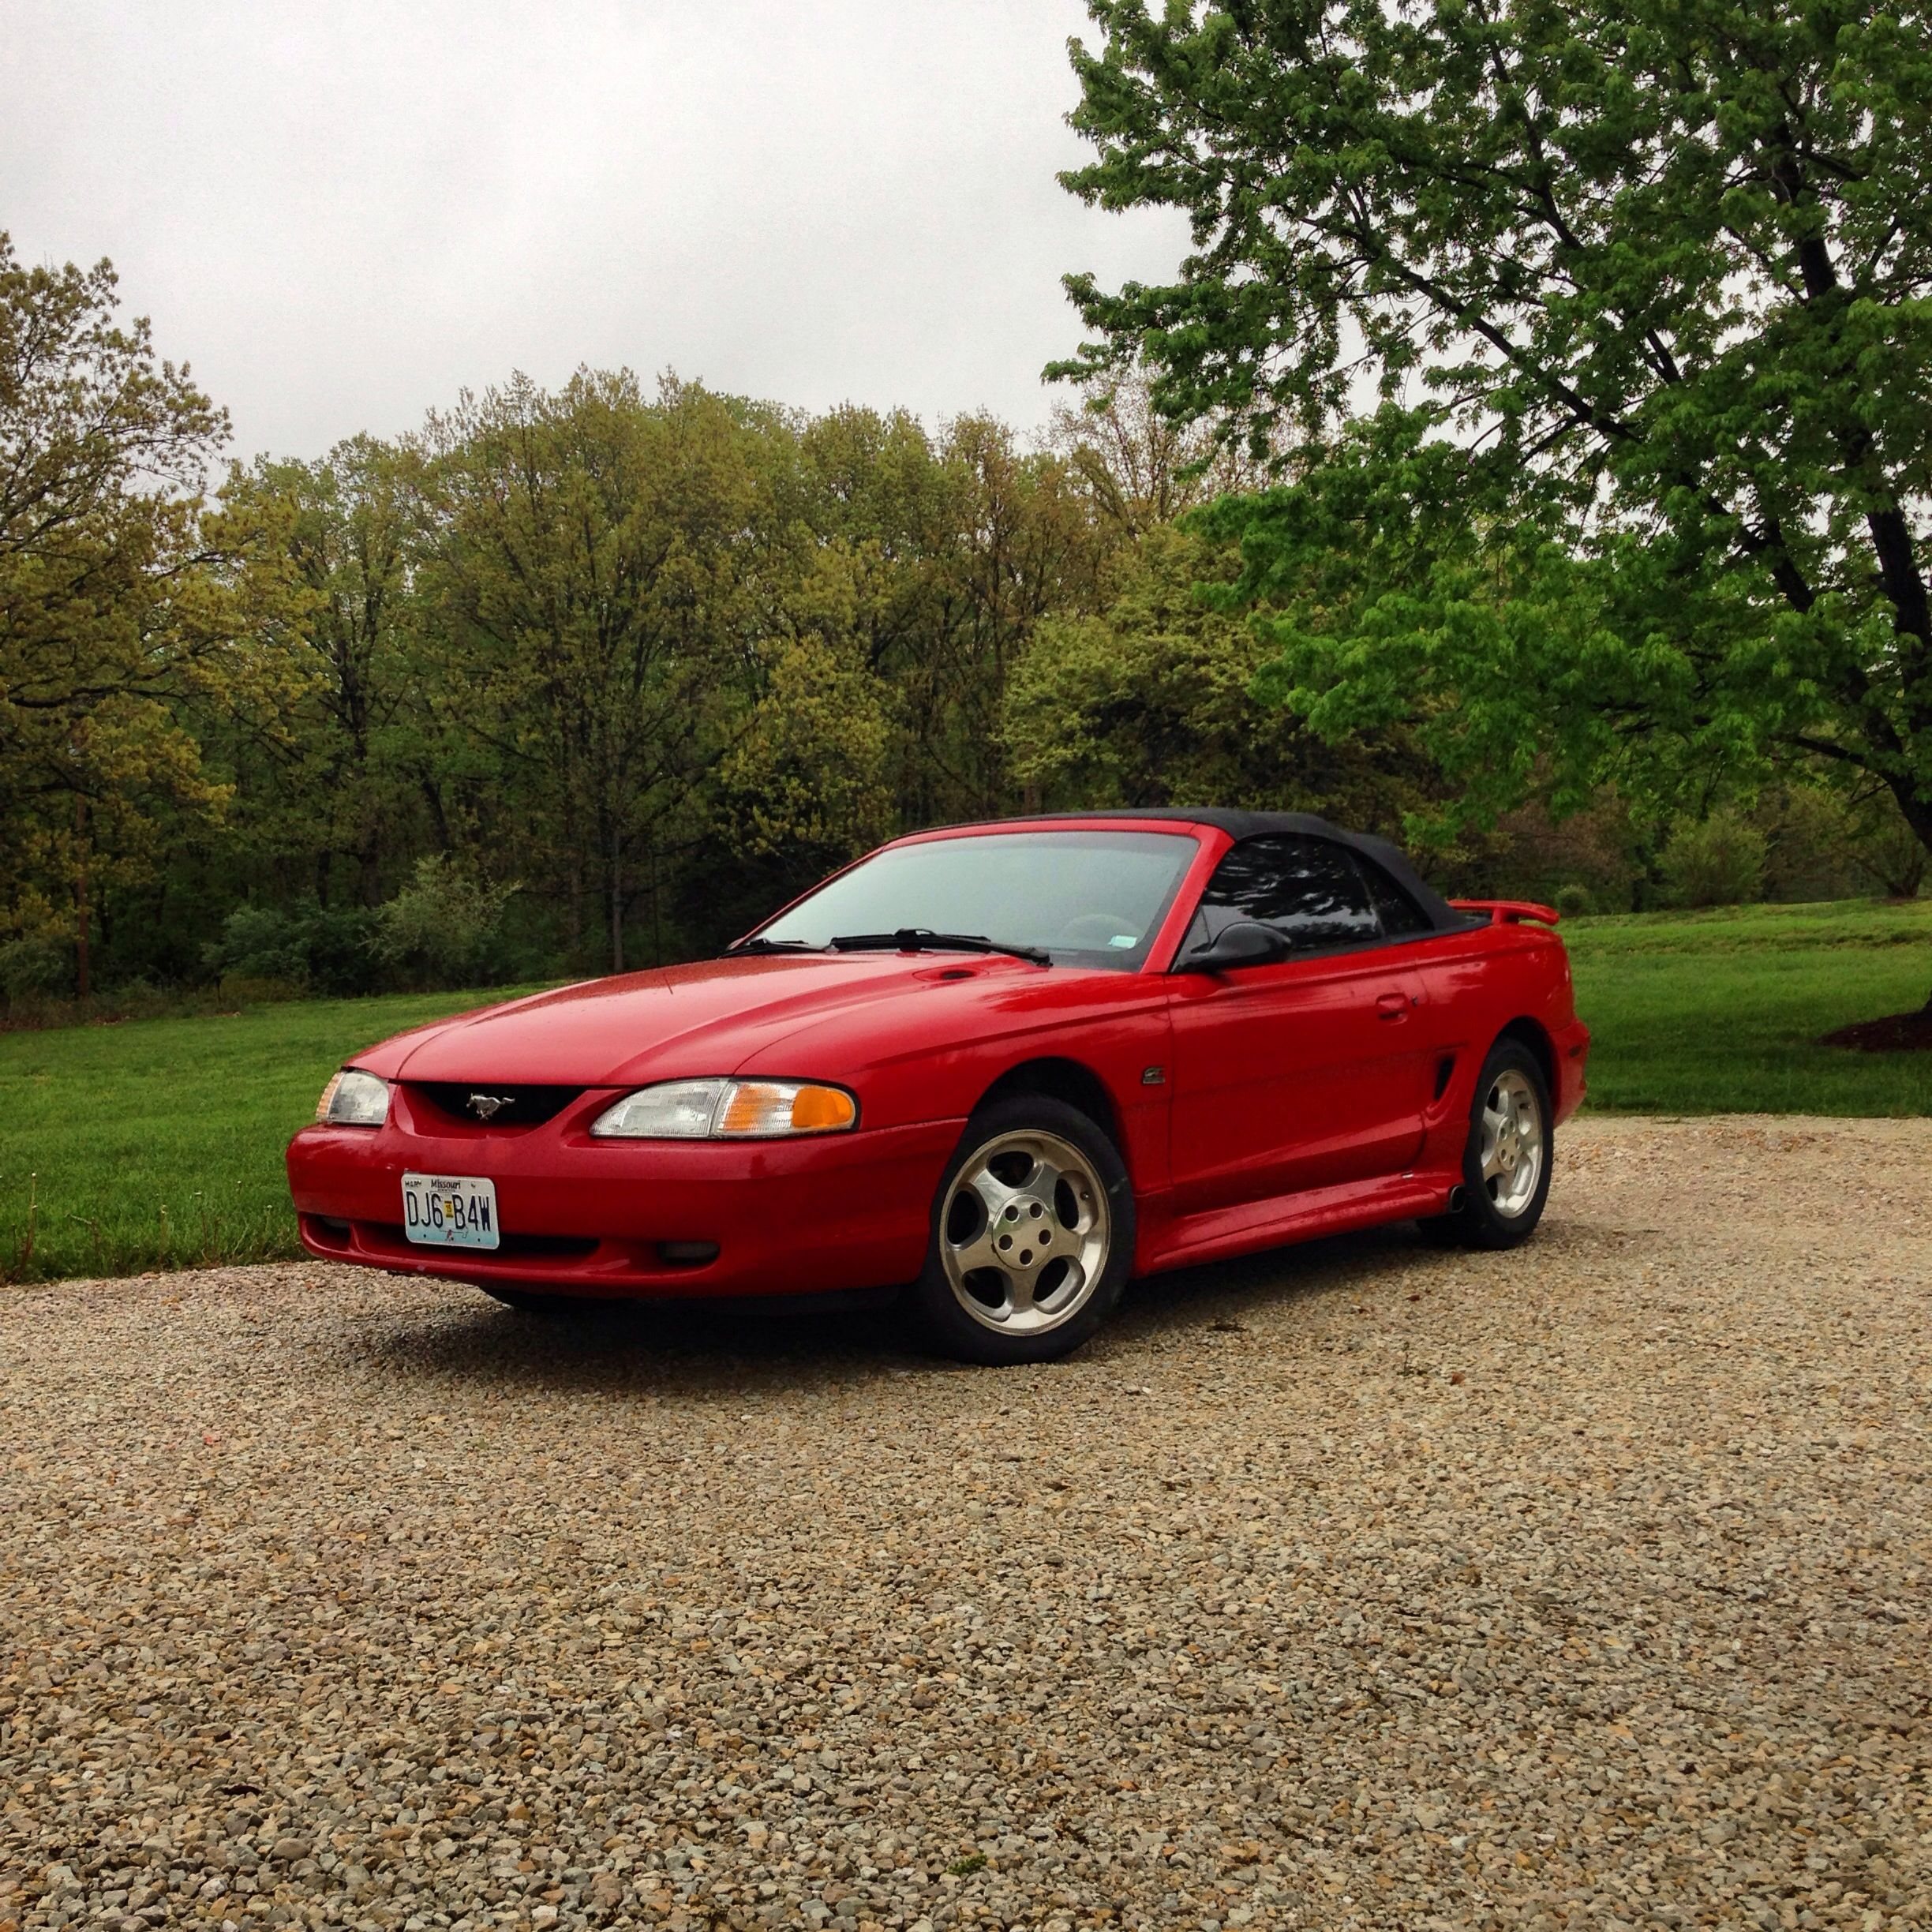 My 1995 Mustang Gt Engine Is Built To A Boss 302 And Roush Side Exhaust Mustang Sn95 Mustang Mustang Gt